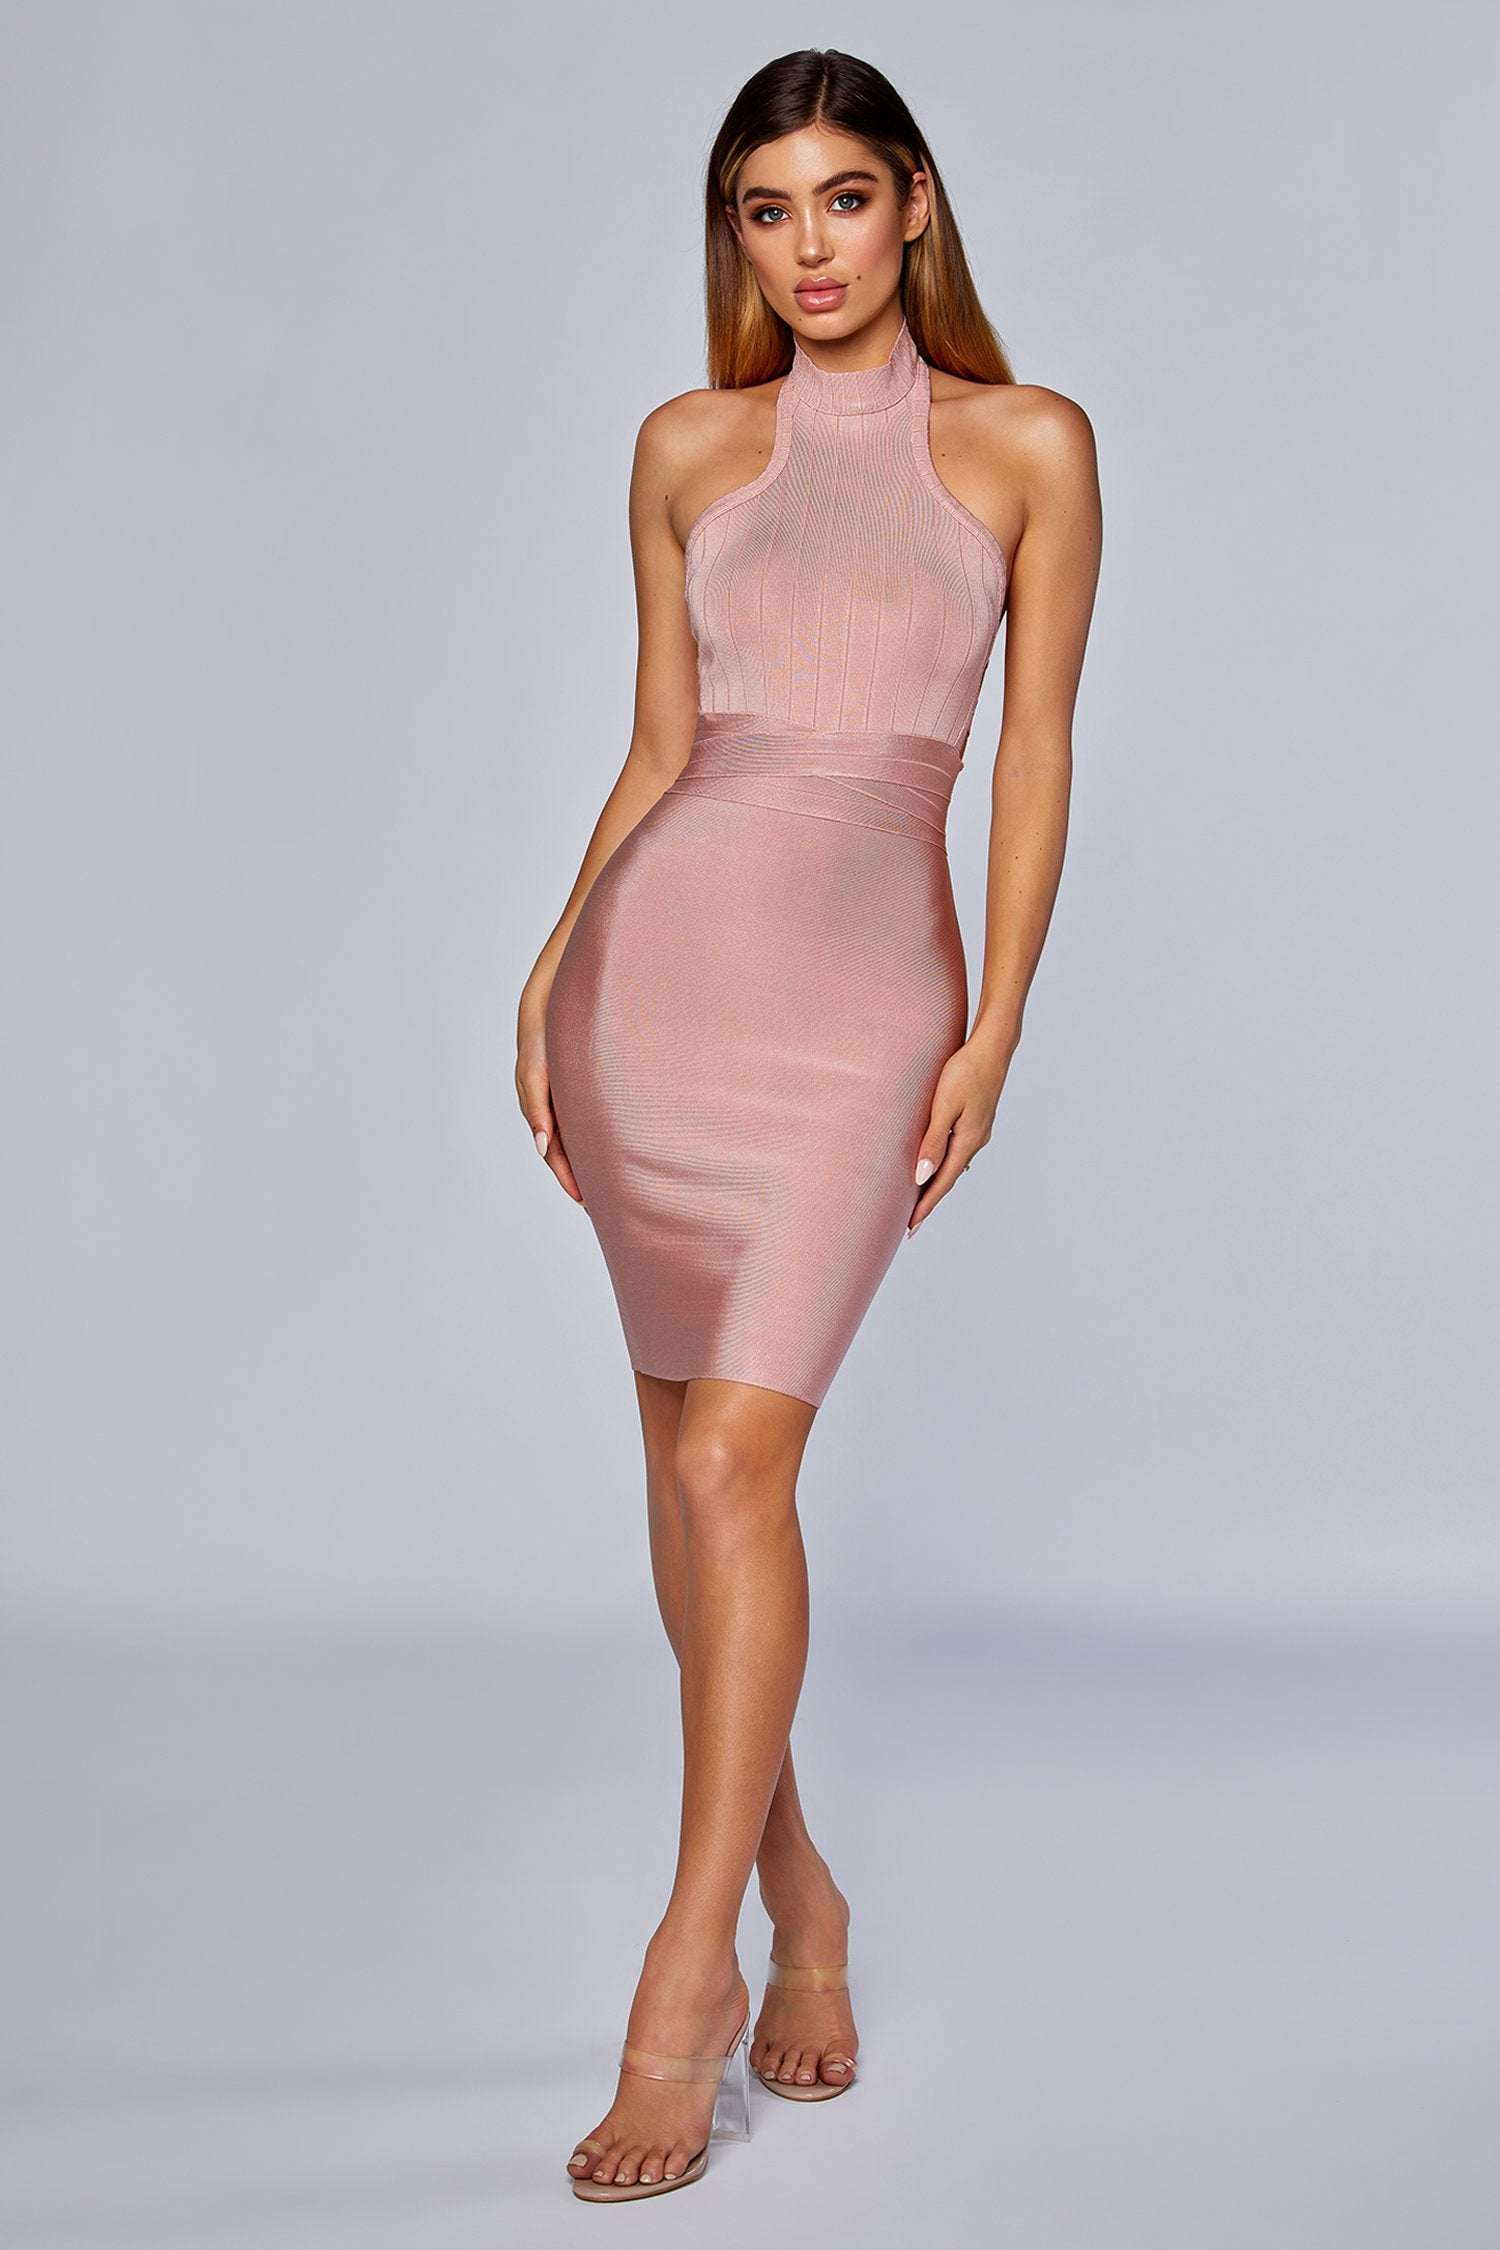 aa815ce819 Lucia High Neck Bandage Dress - Blush - MESHKI